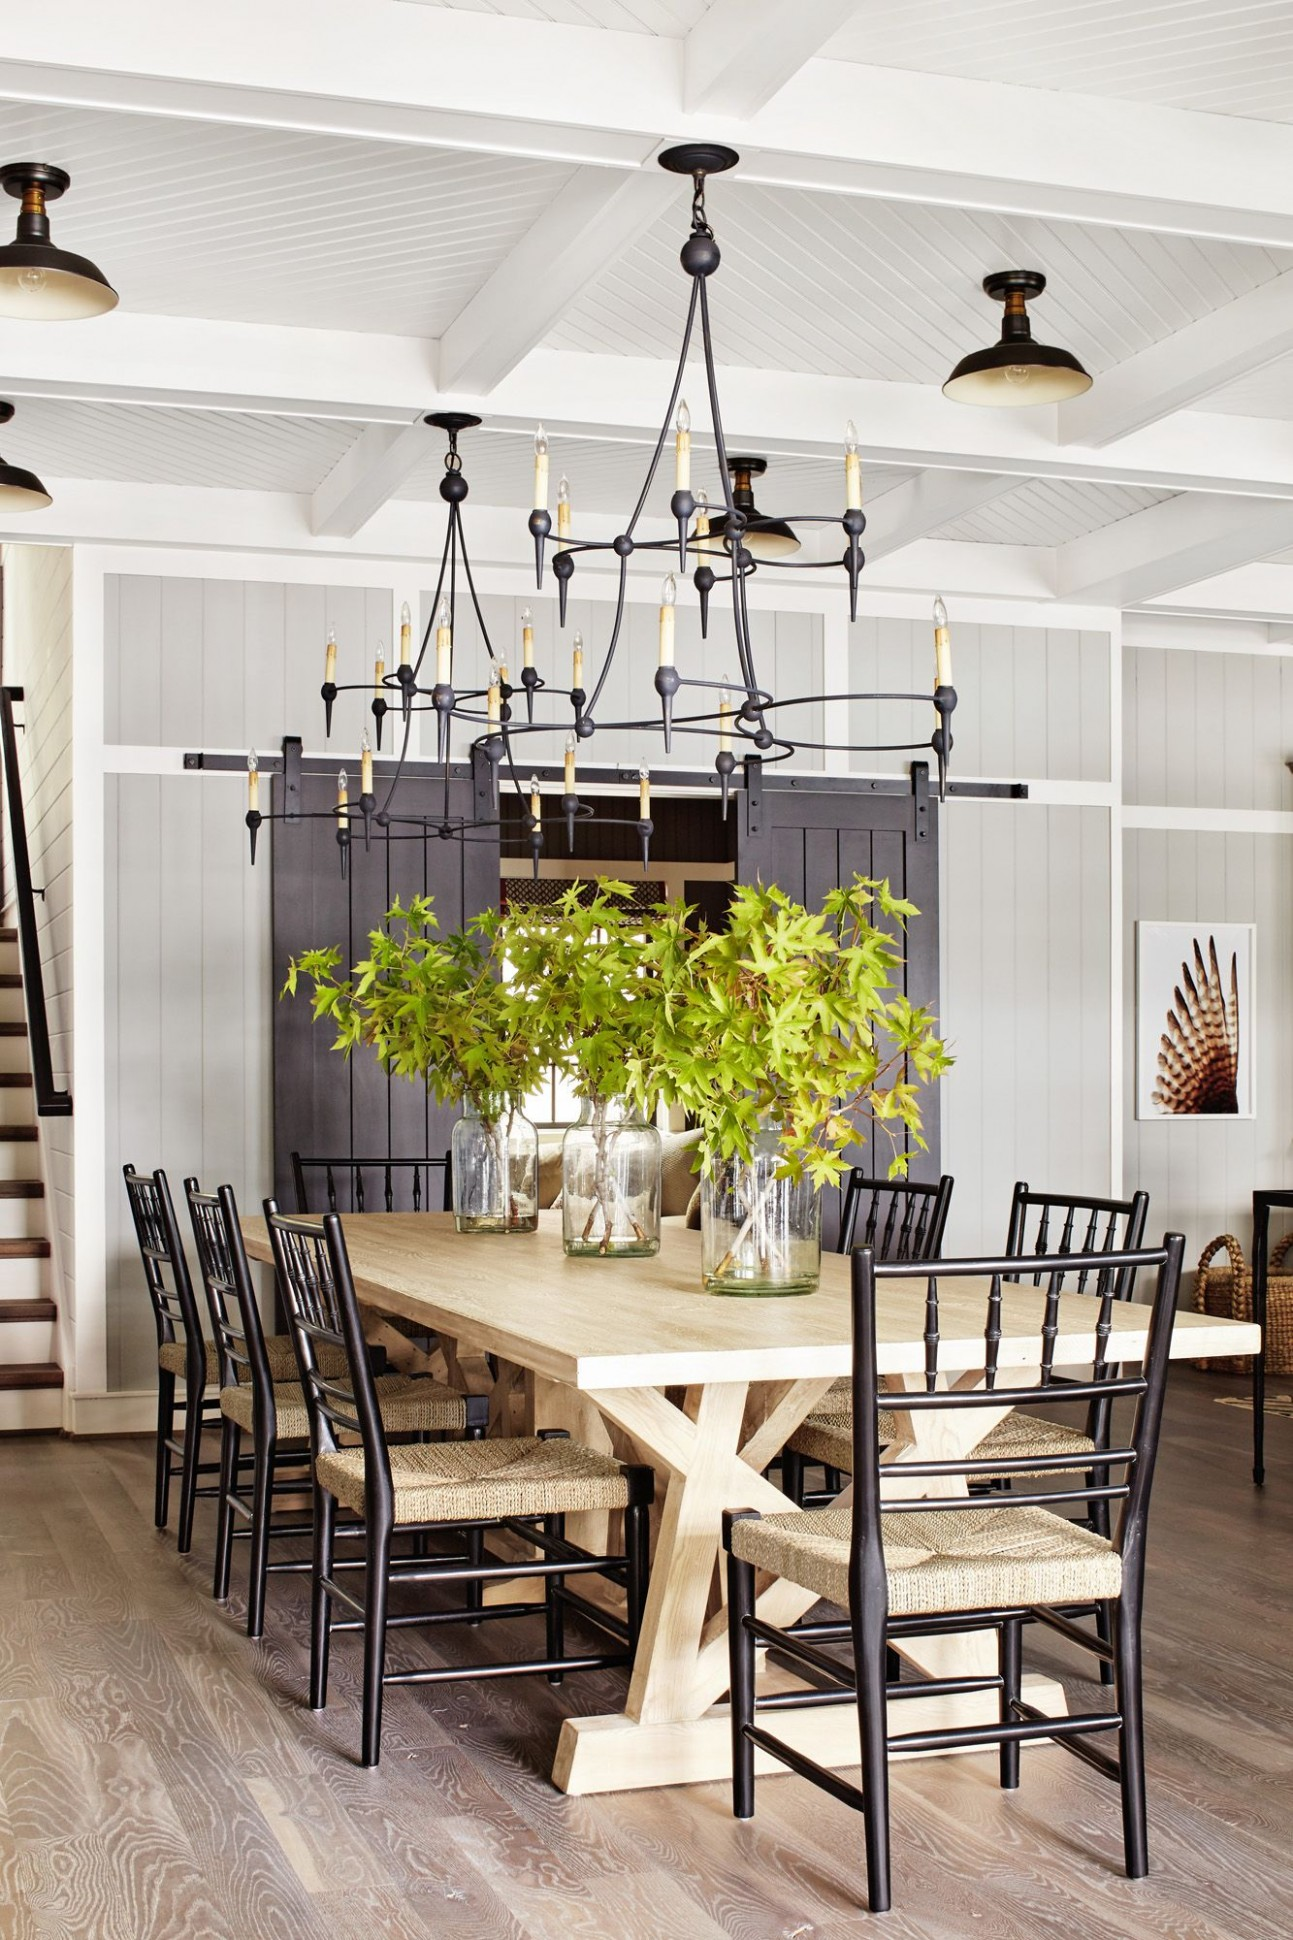 10 Best Dining Room Decorating Ideas - Country Dining Room Decor - Dining Room Ideas Tables